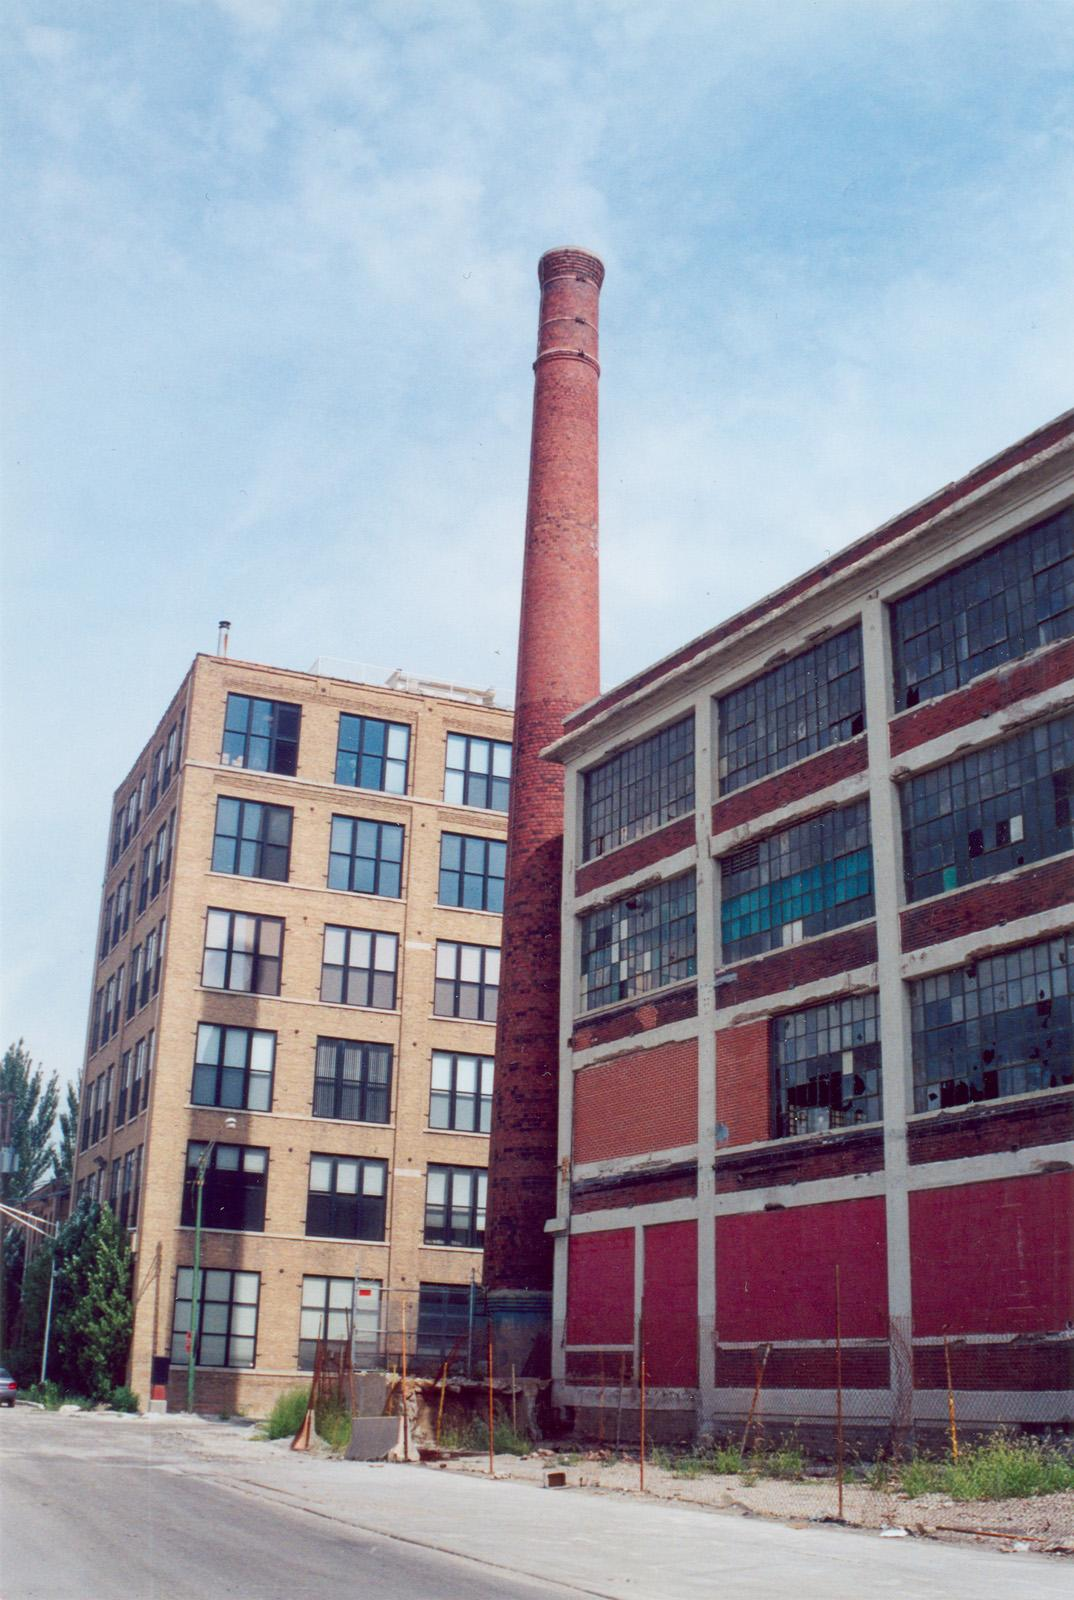 1840 N. Clybourn Ave.; Artmark; Industrial building; Factory